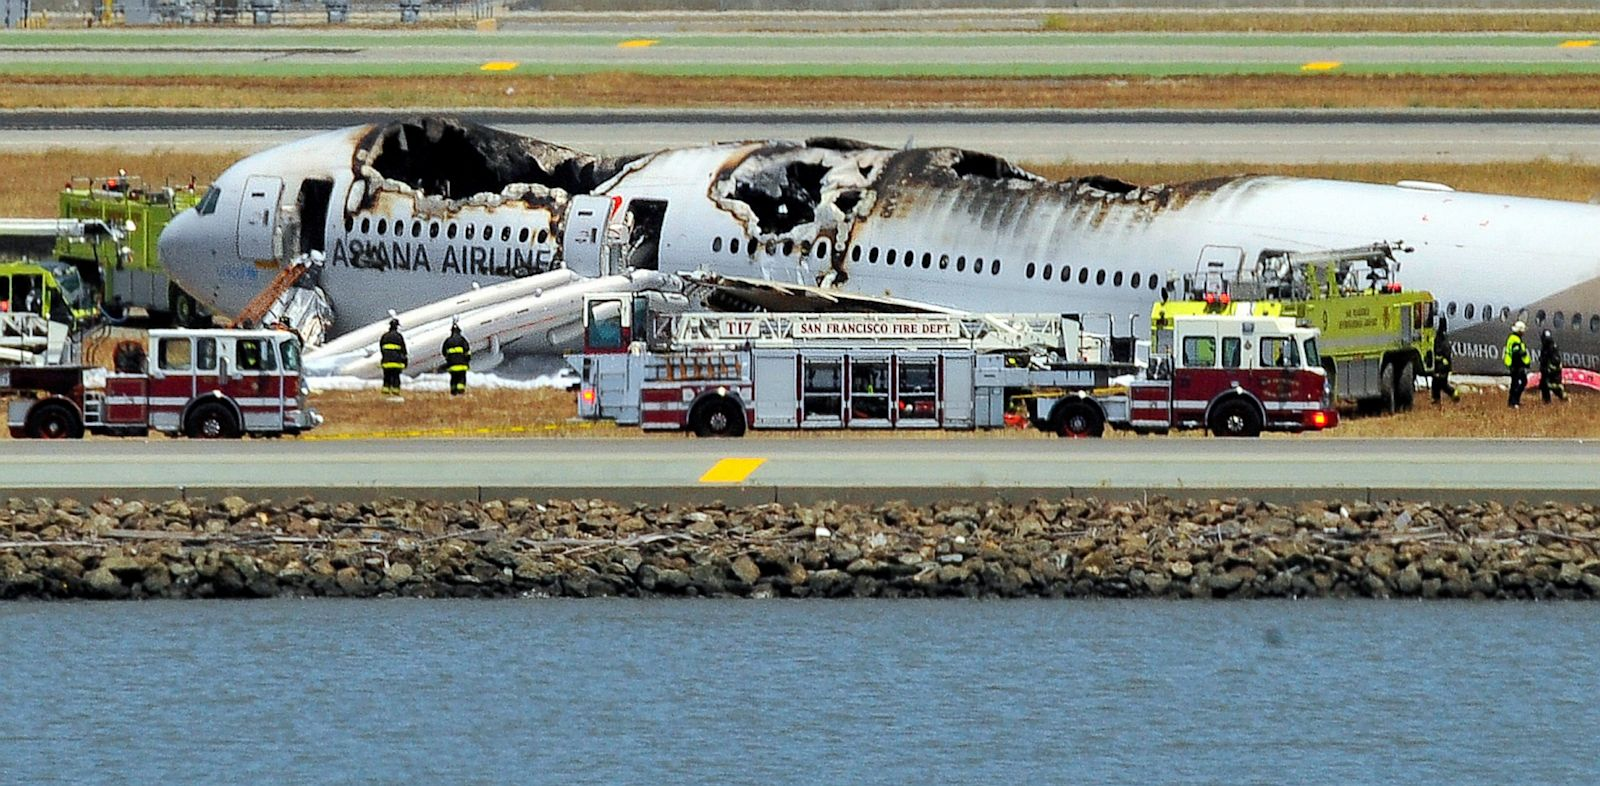 PHOTO: An Asiana Airlines Boeing 777 is seen on the runway at San Francisco International Airport after crash landing, July 6, 2013.